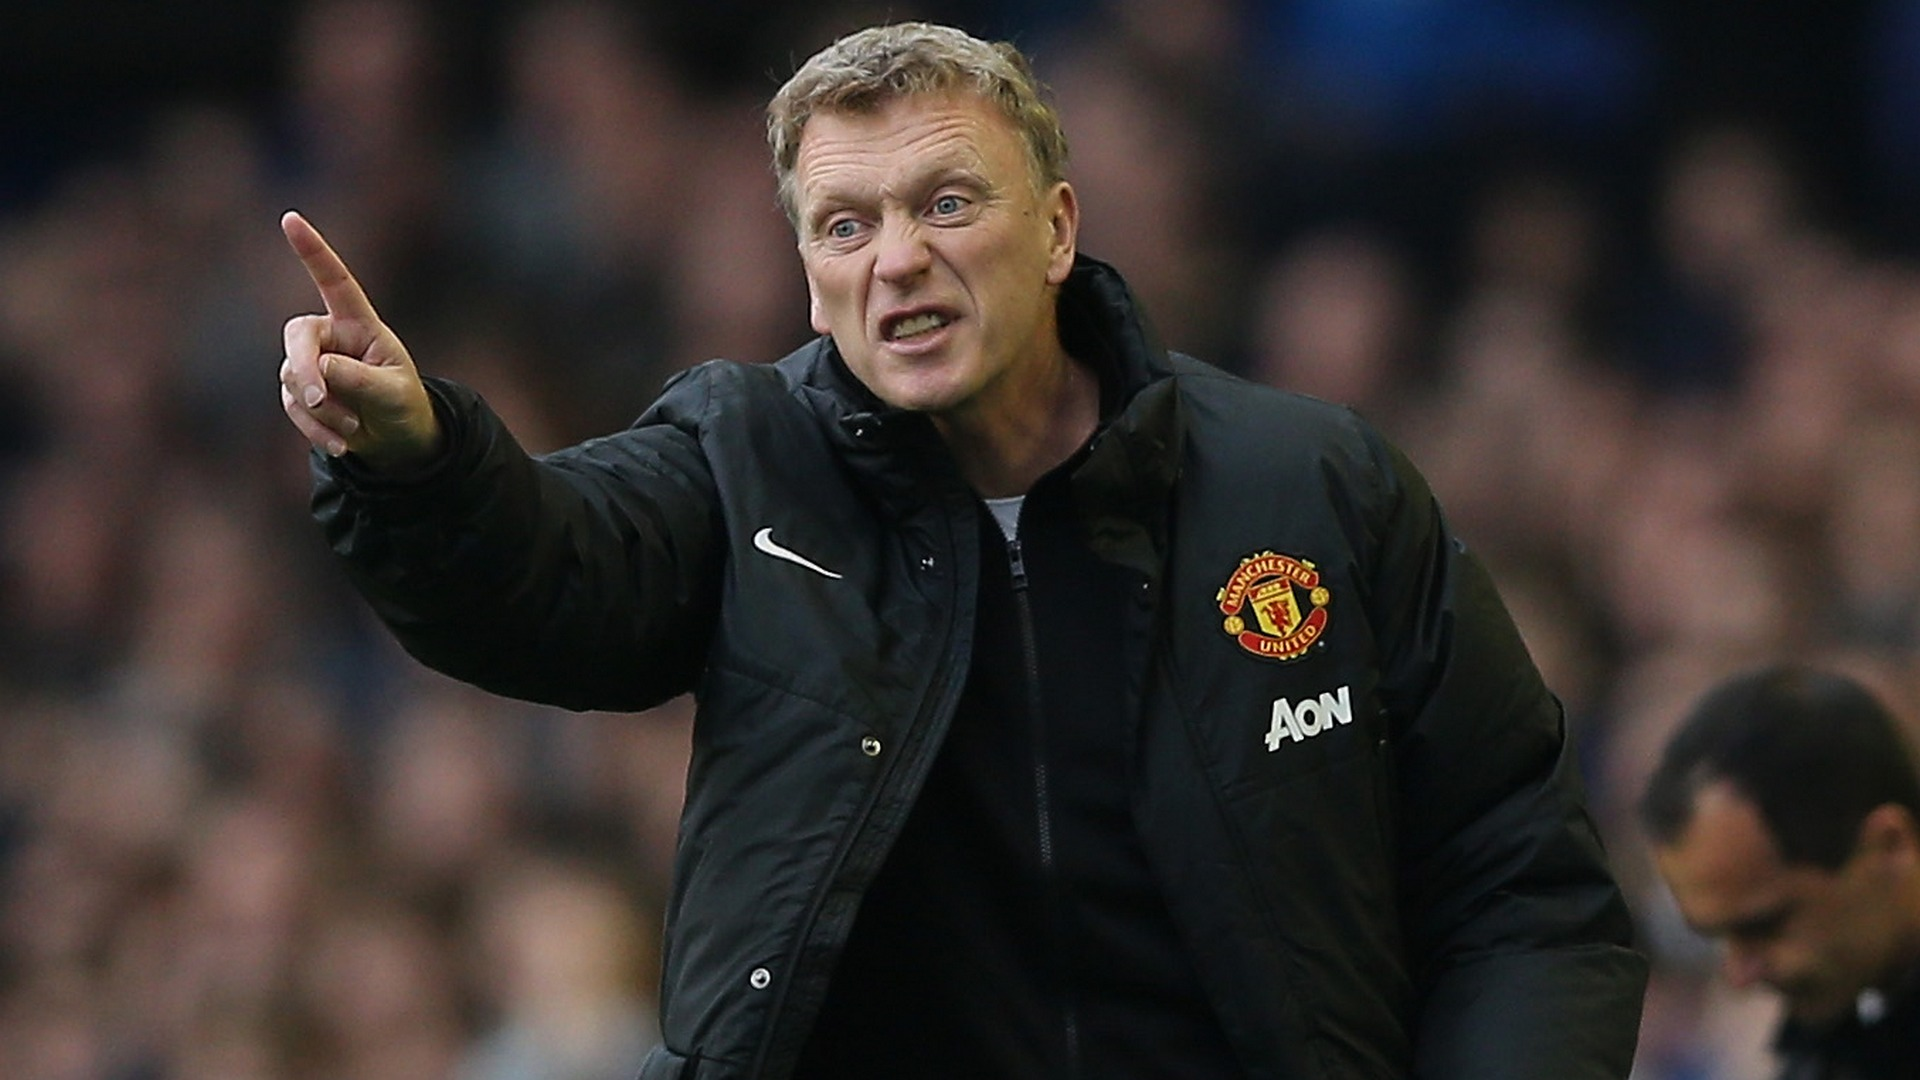 'Fernandes asking price pushed up for Man Utd' – Red Devils desperately need creativity, says Cleverley